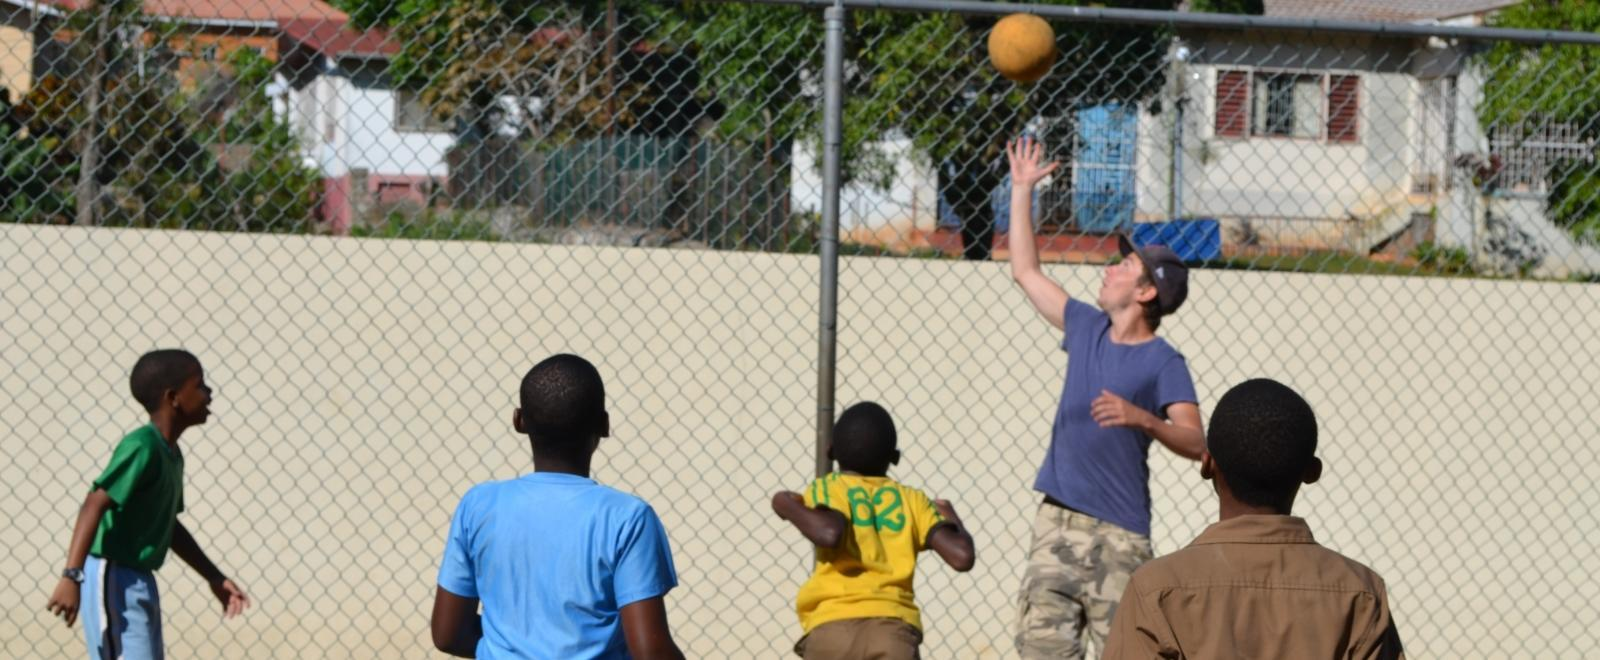 Students learn the basics of basketball during volunteer sports coaching in schools in Jamaica